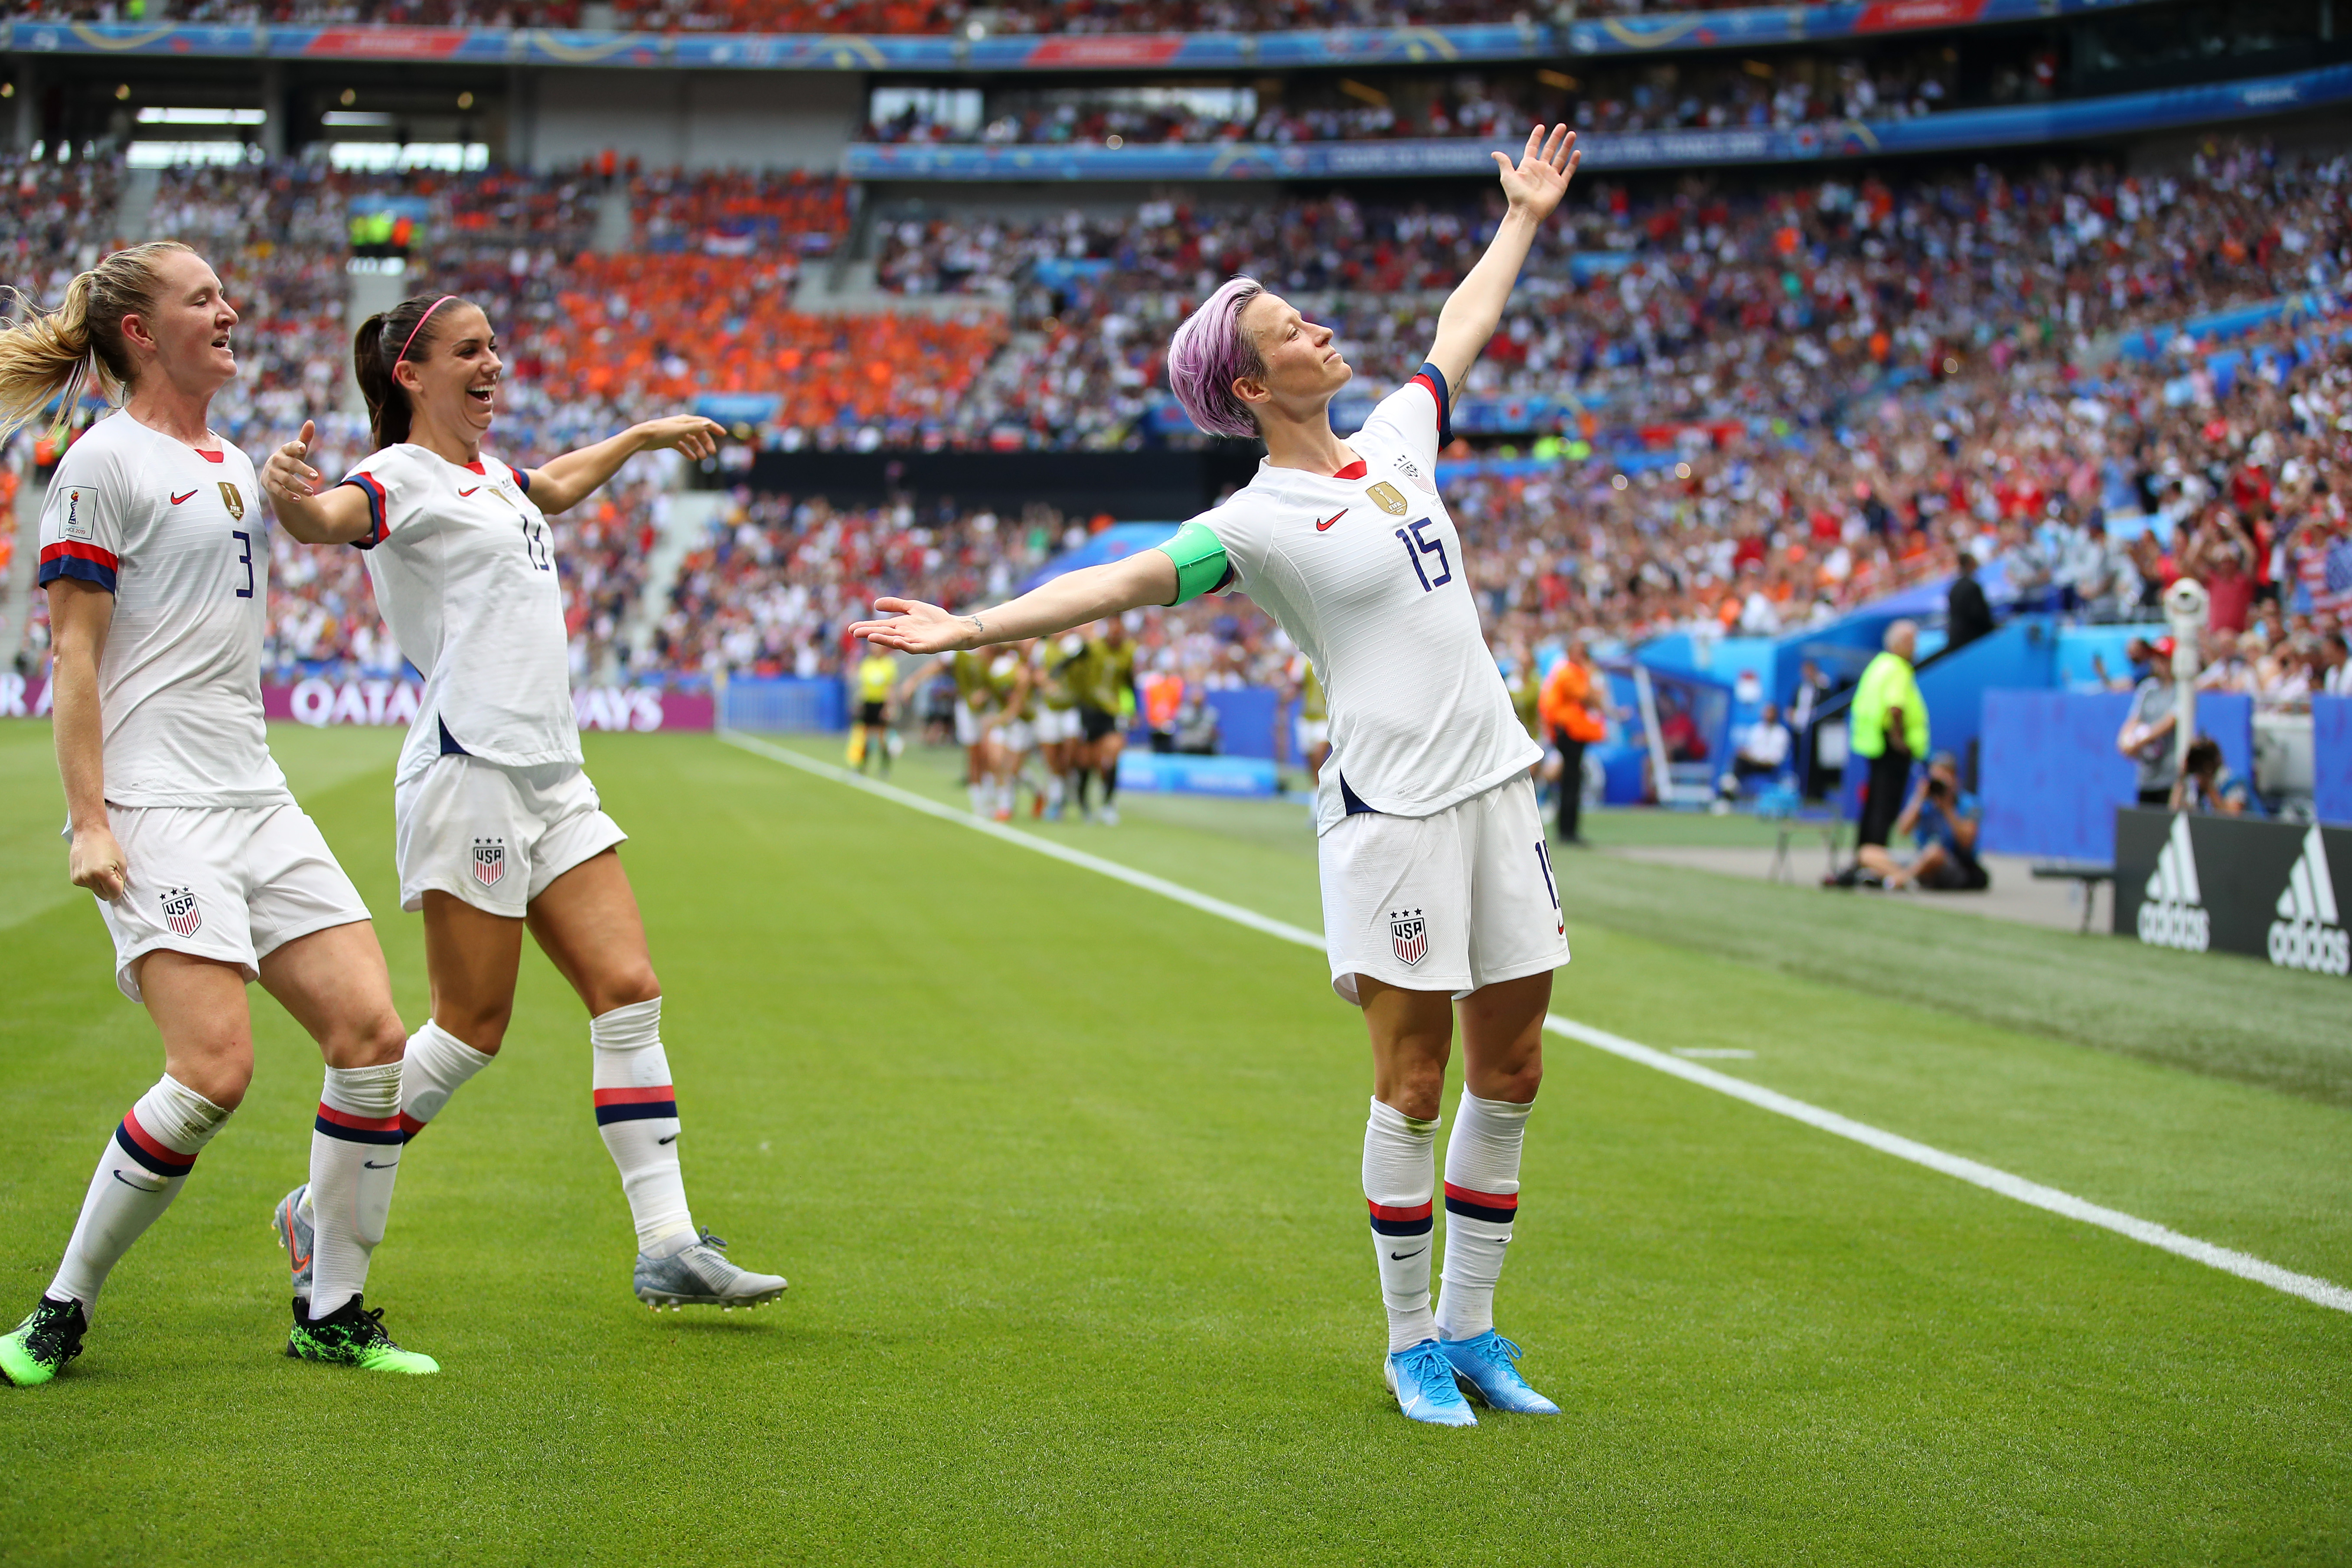 Megan Rapinoe celebrates after scoring her team's first goal during the 2019 FIFA Women's World Cup France Final match between The United States of America and The Netherlands at Stade de Lyon on Sunday, July 07, 2019 in Lyon, France.